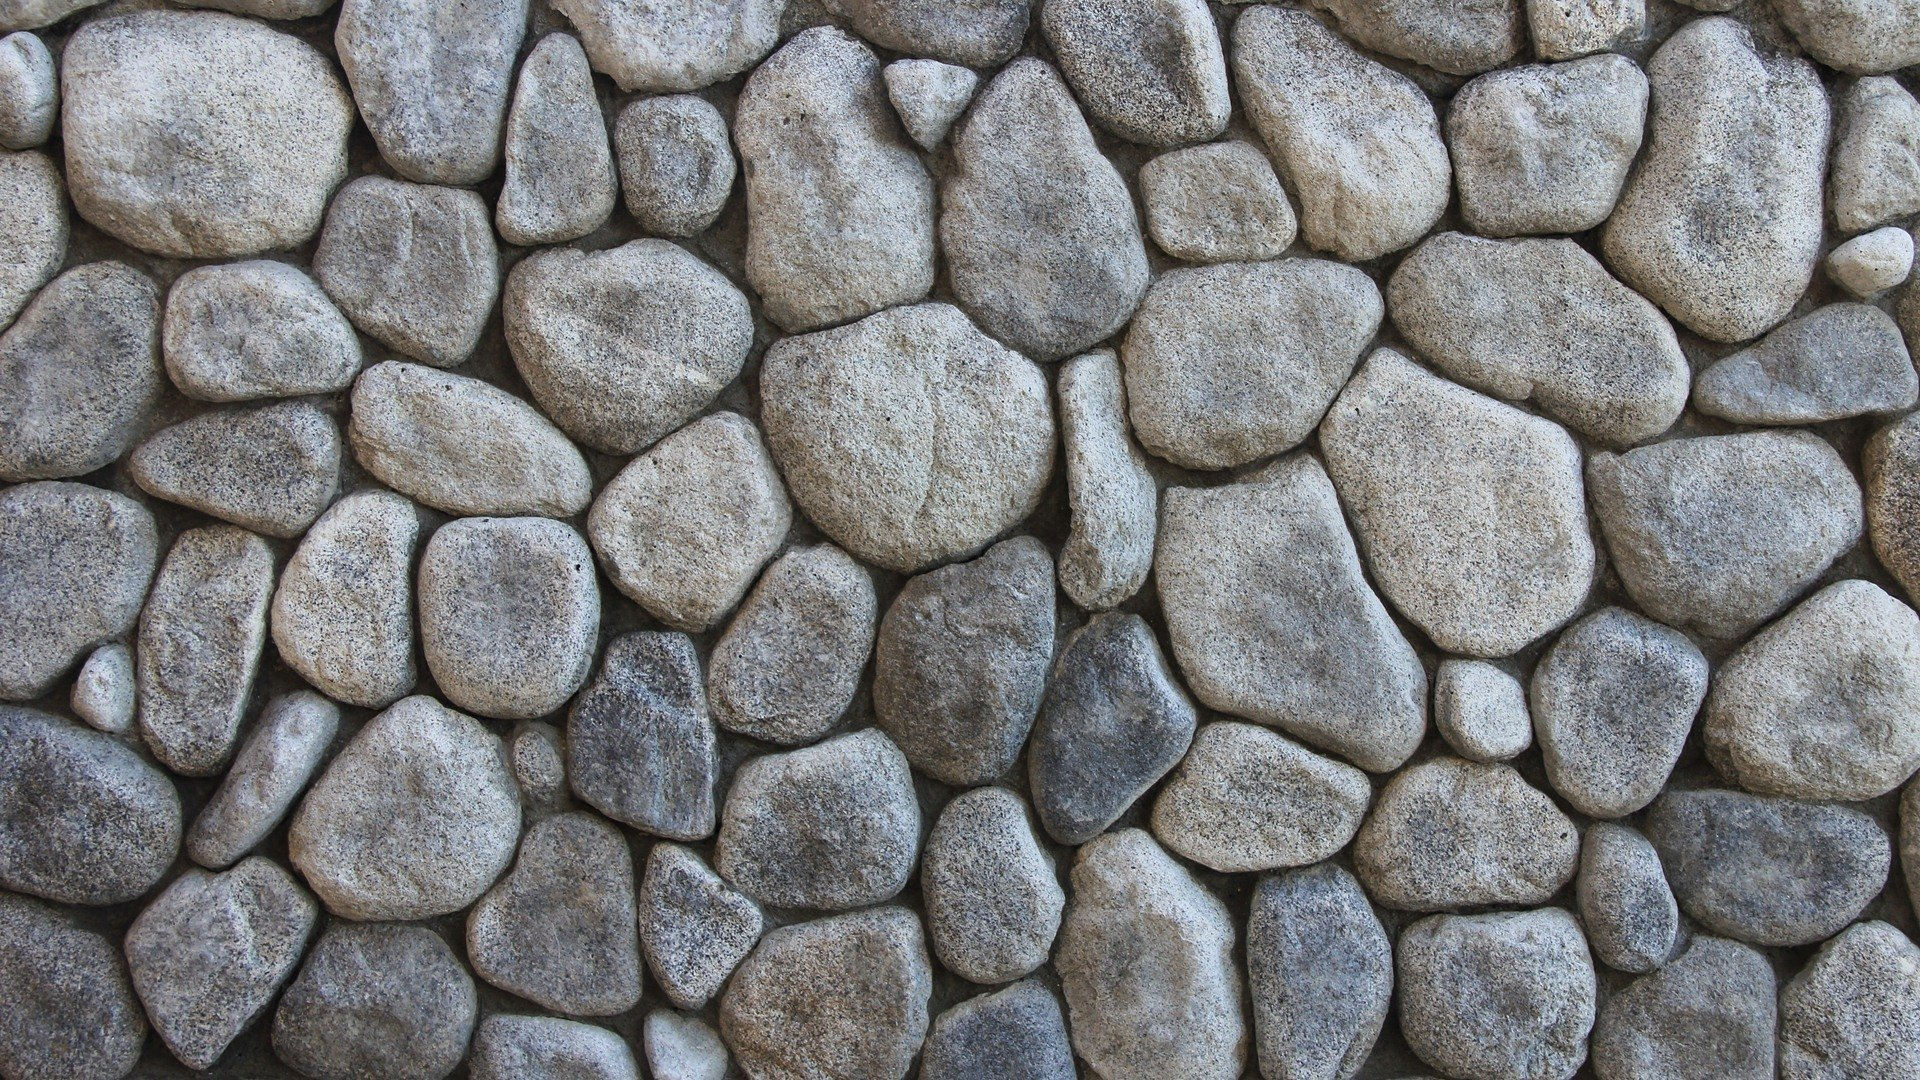 Stone Background Wallpapers WIN10 THEMES 1920x1080